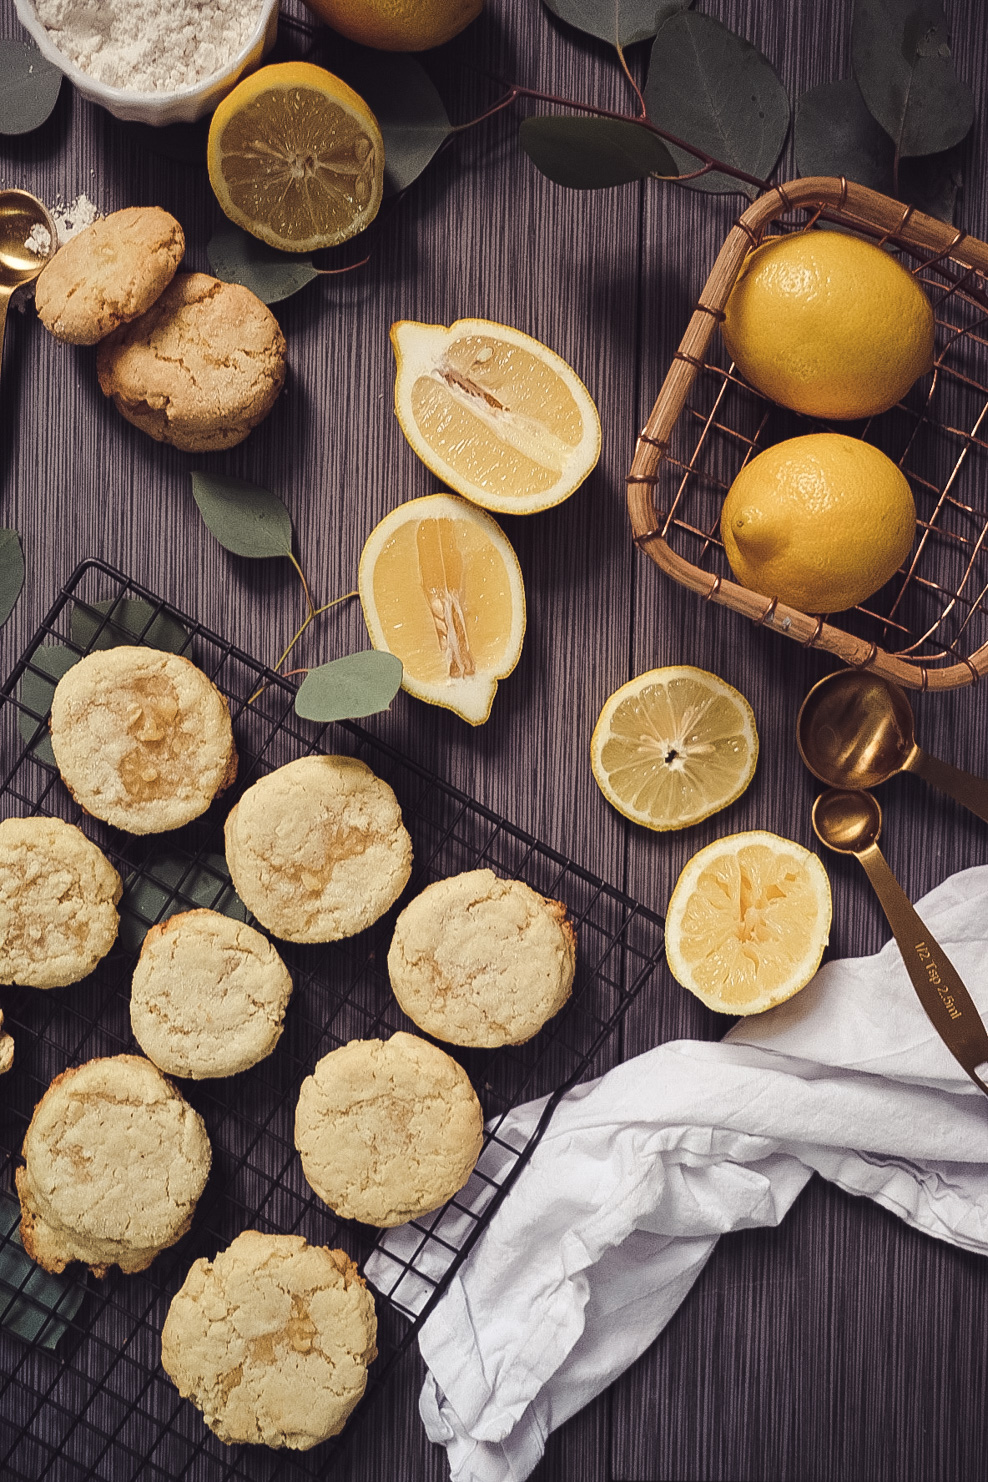 Lifestyle Blogger Chocolate and Lace shares her recipe for Chewy Lemon Sugar Cookies.